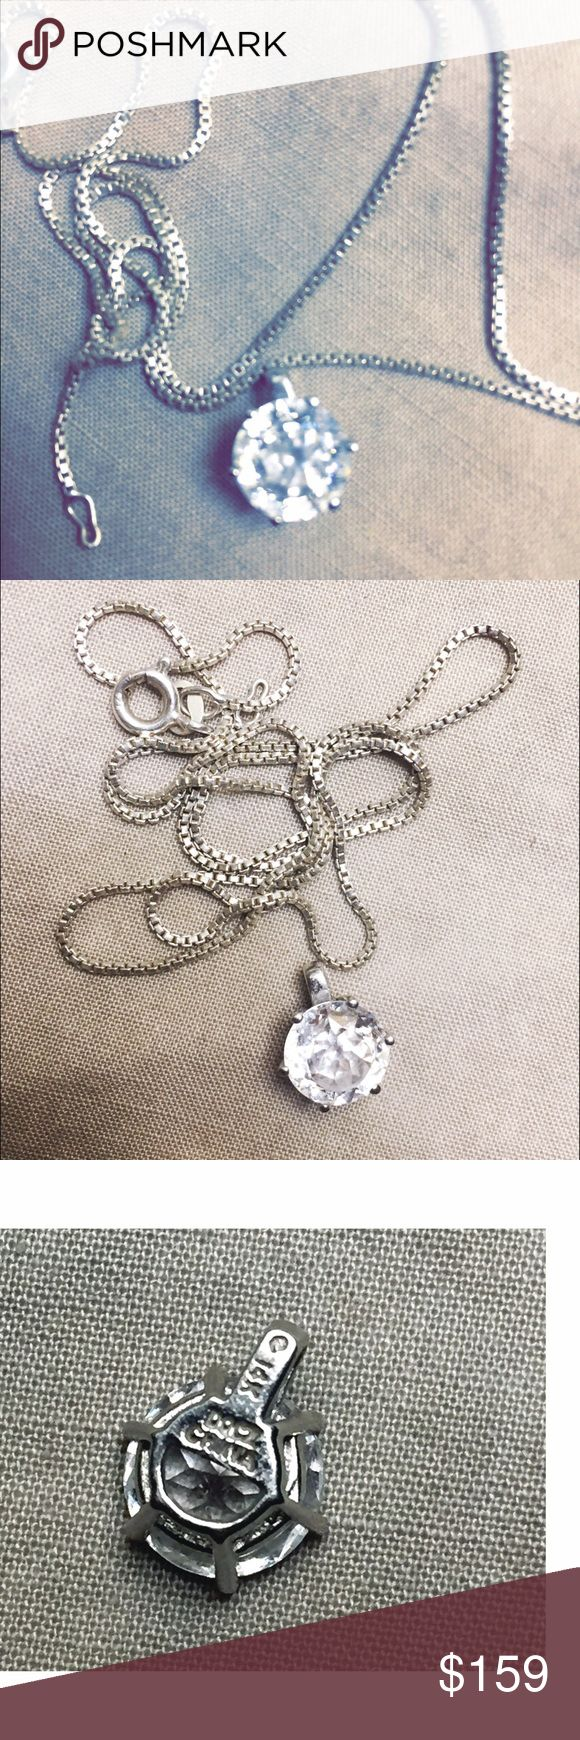 """2 carat Diamonique 14k necklace Yes! It's that stone that even fools jewelry experts! Looks EXACTLY like a diamond, sparkles brilliant & brightly, the cut is amazing, it's very bright & beautiful, outside the sun catches it like crazy 😜! 14k white gold pendant & bale, sterling 18"""" box chain. Will come gift boxed. Purchased from QVC jewels, 2015. Nobody will know it's not real! Guaranteed👌🏼❌pp/trades/other websites. Reasonable offers please, lowball offers are ignored. free 🎁‼️ qvc…"""